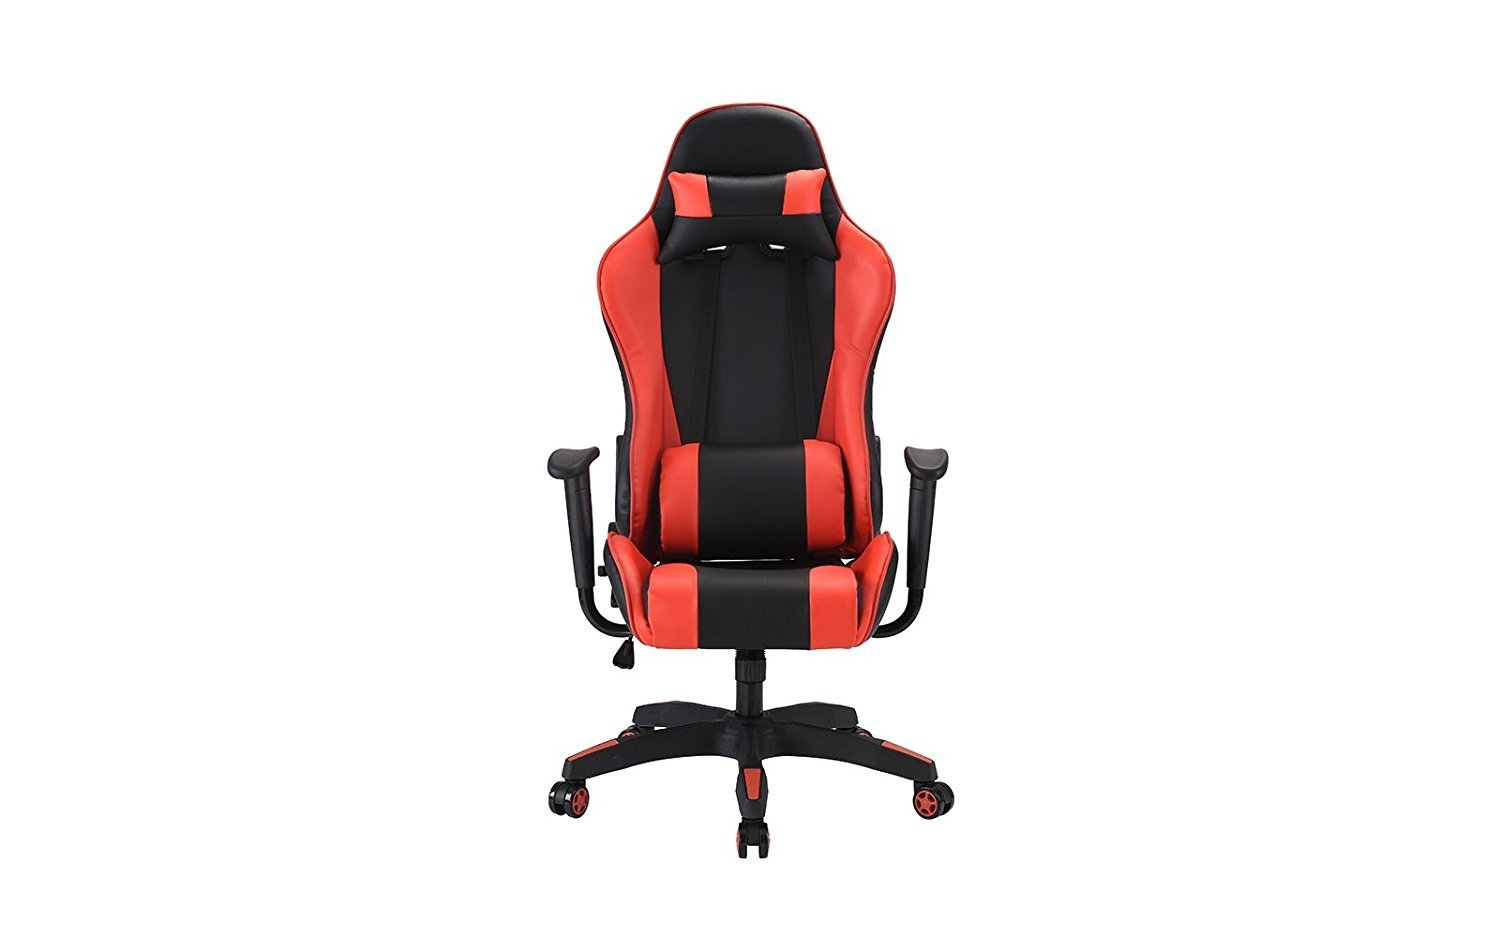 Wondrous Details About Computer Gaming Chair Office Pu Leather Swivel Computer Chair Red Black Beatyapartments Chair Design Images Beatyapartmentscom